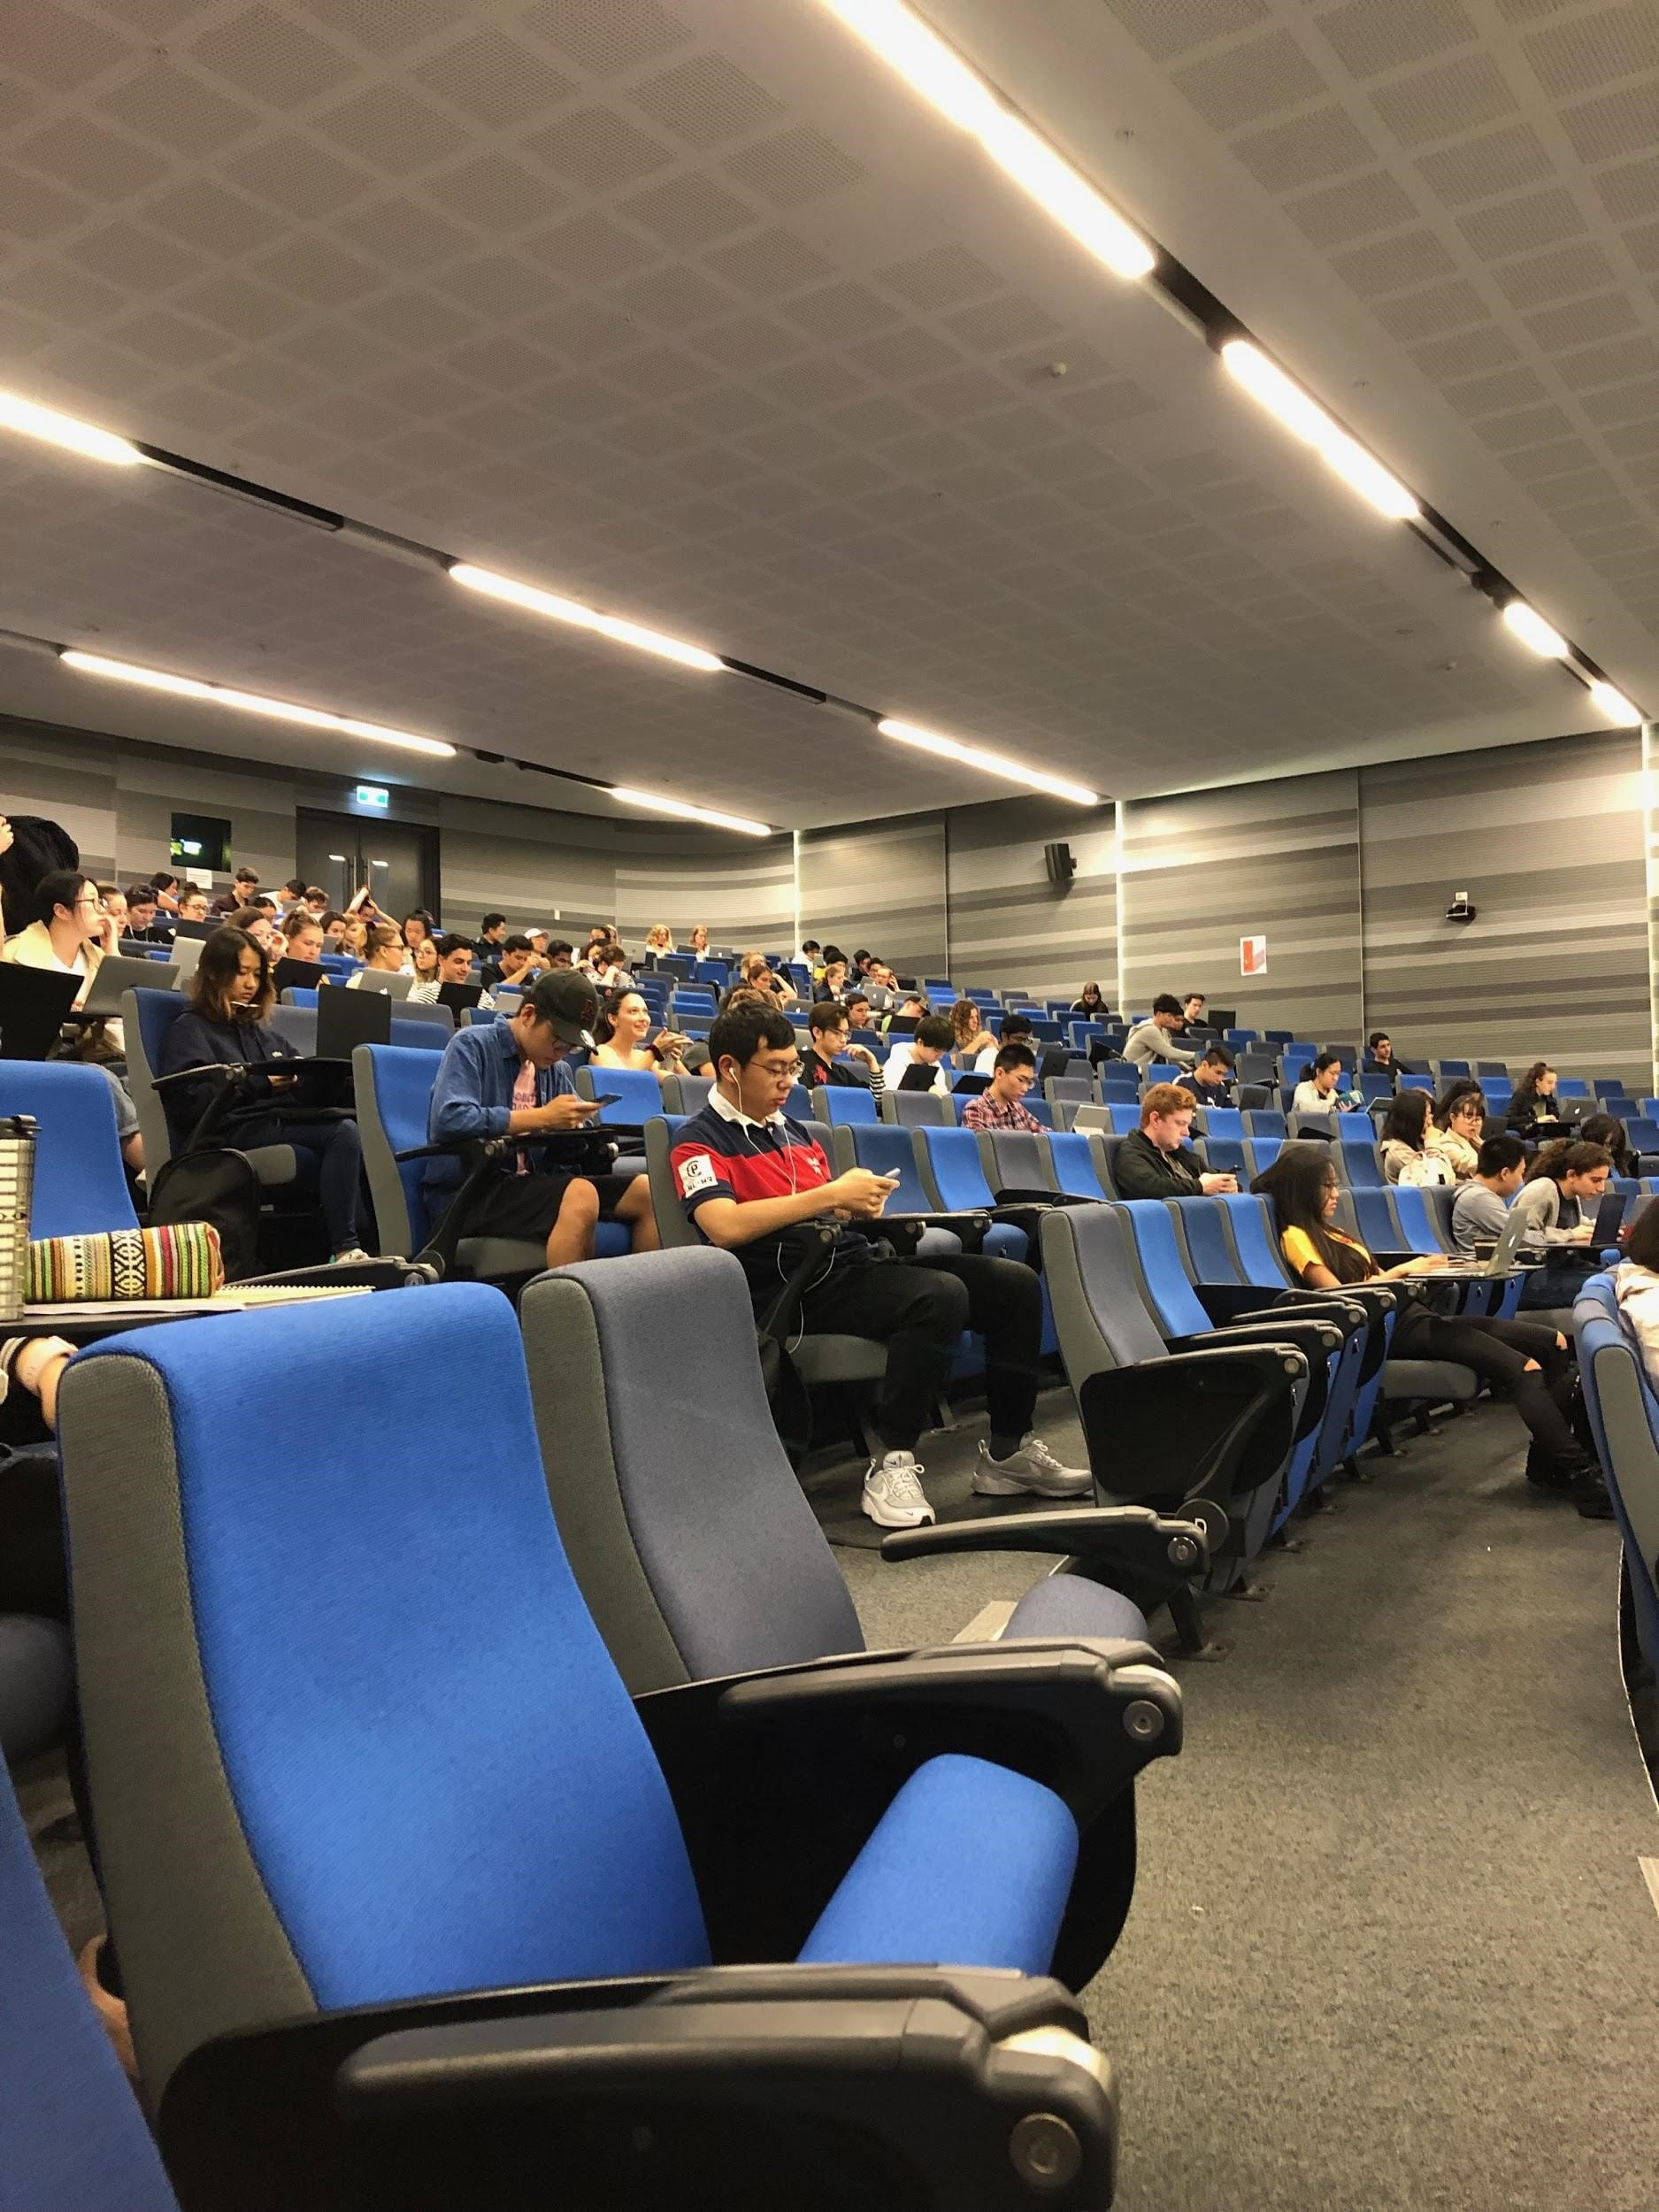 large lecture hall with blue seats and half full of students